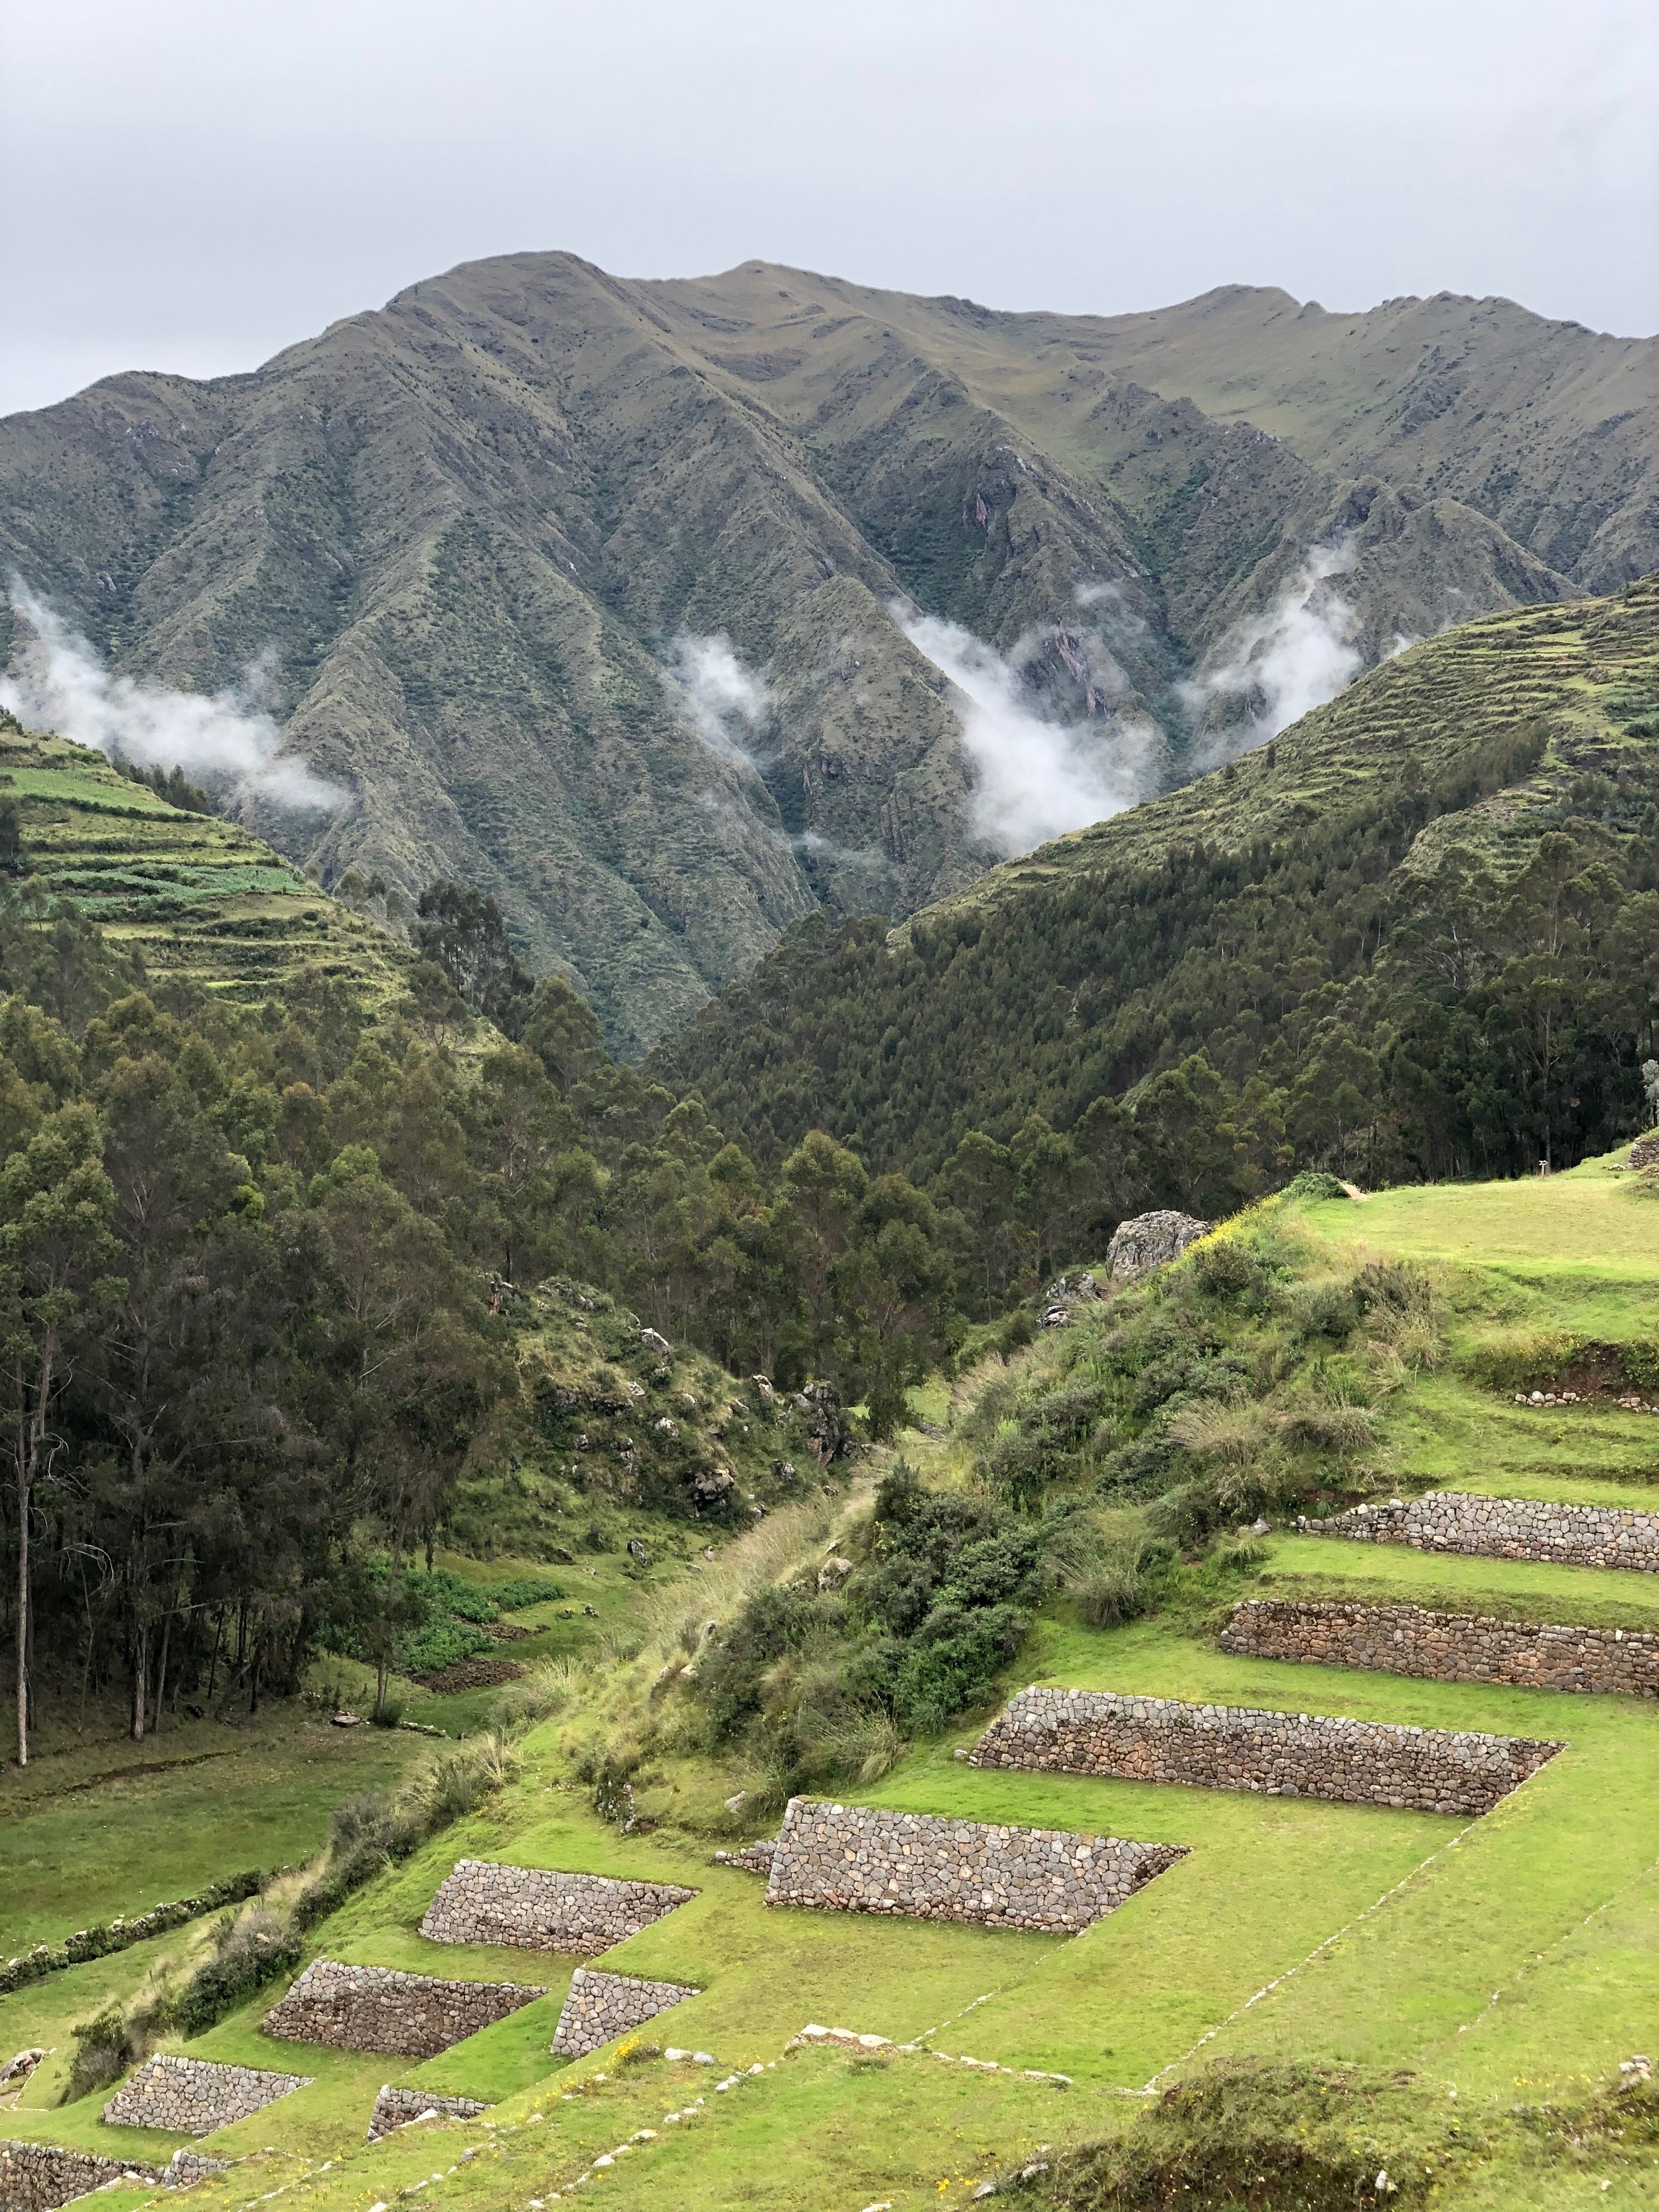 Sacred-Valley-chincero-ruins-peru-south america-travel-tips-tour-itinerary